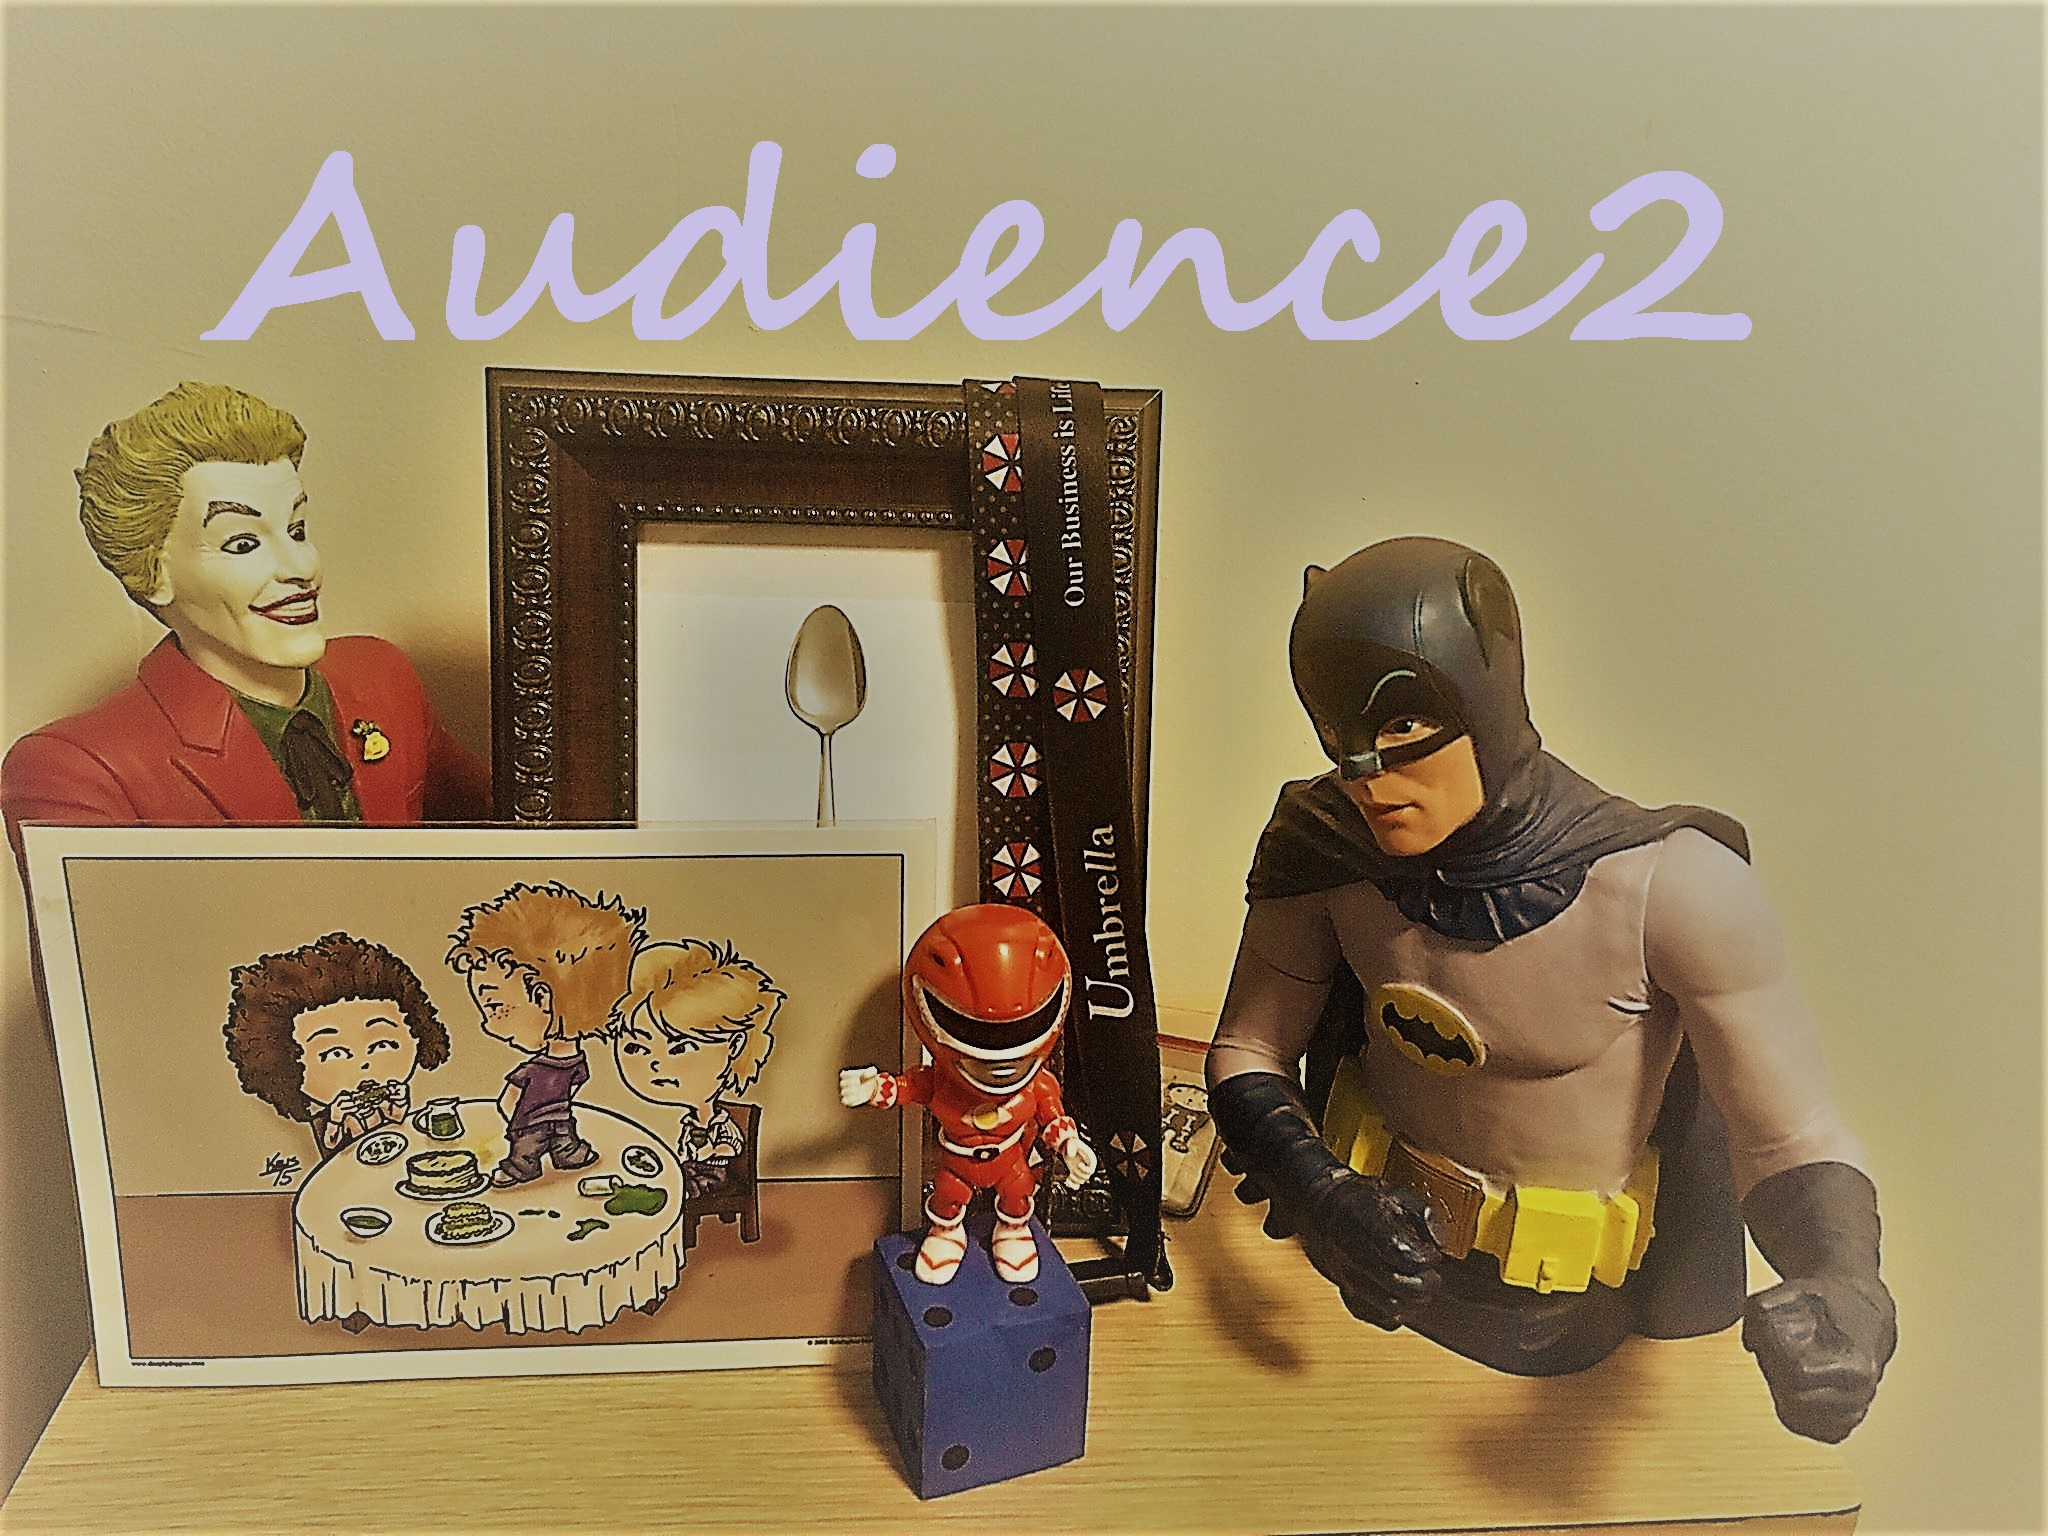 Audience2 Podcast